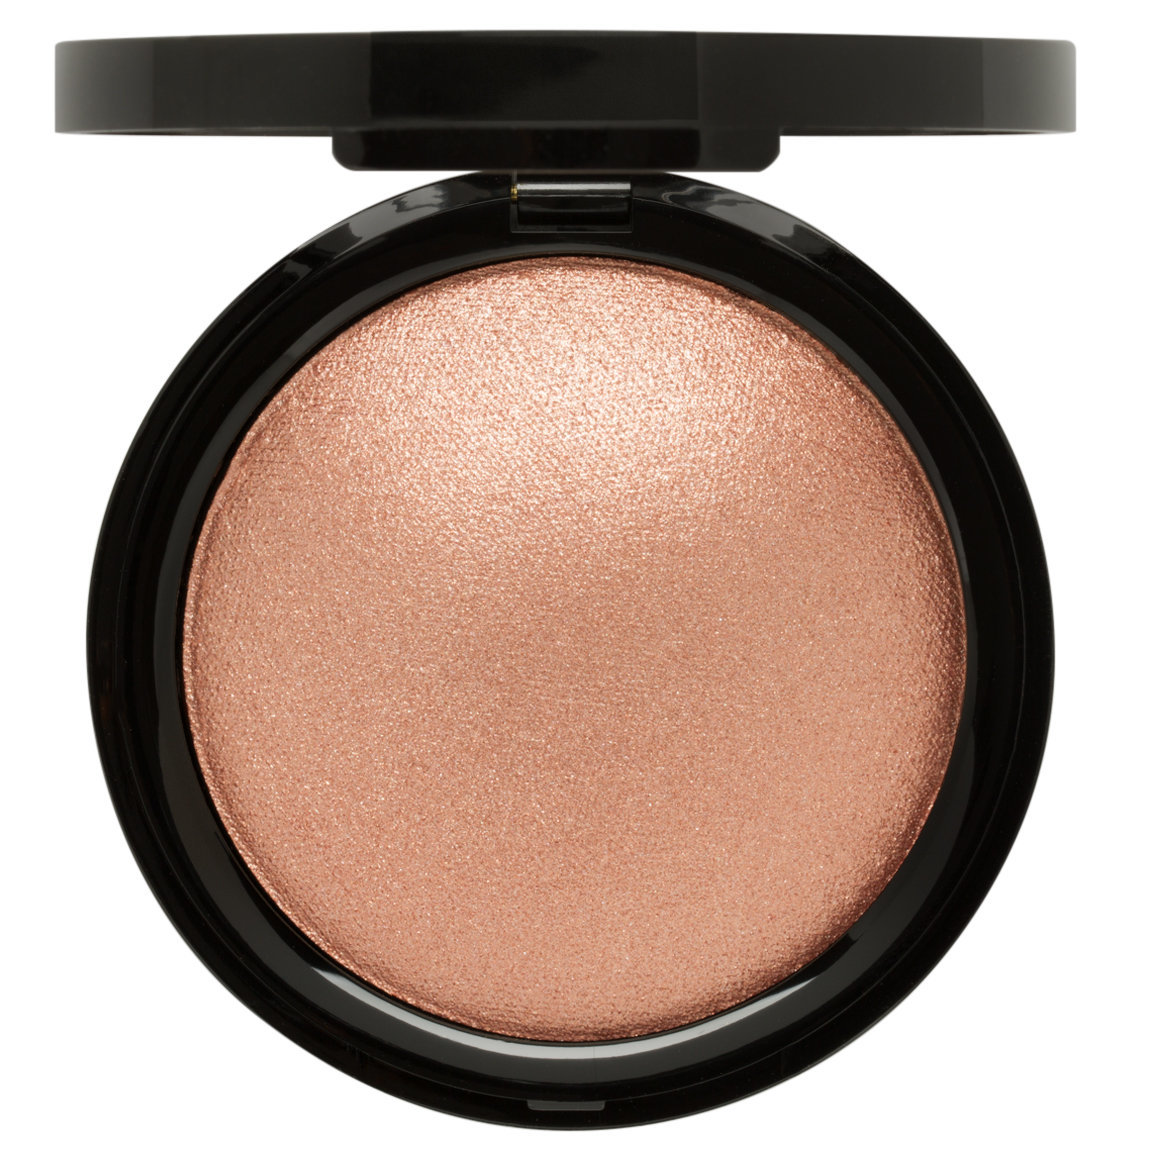 Inglot Cosmetics Soft Sparkler Face Eyes Body Highlighter product swatch.